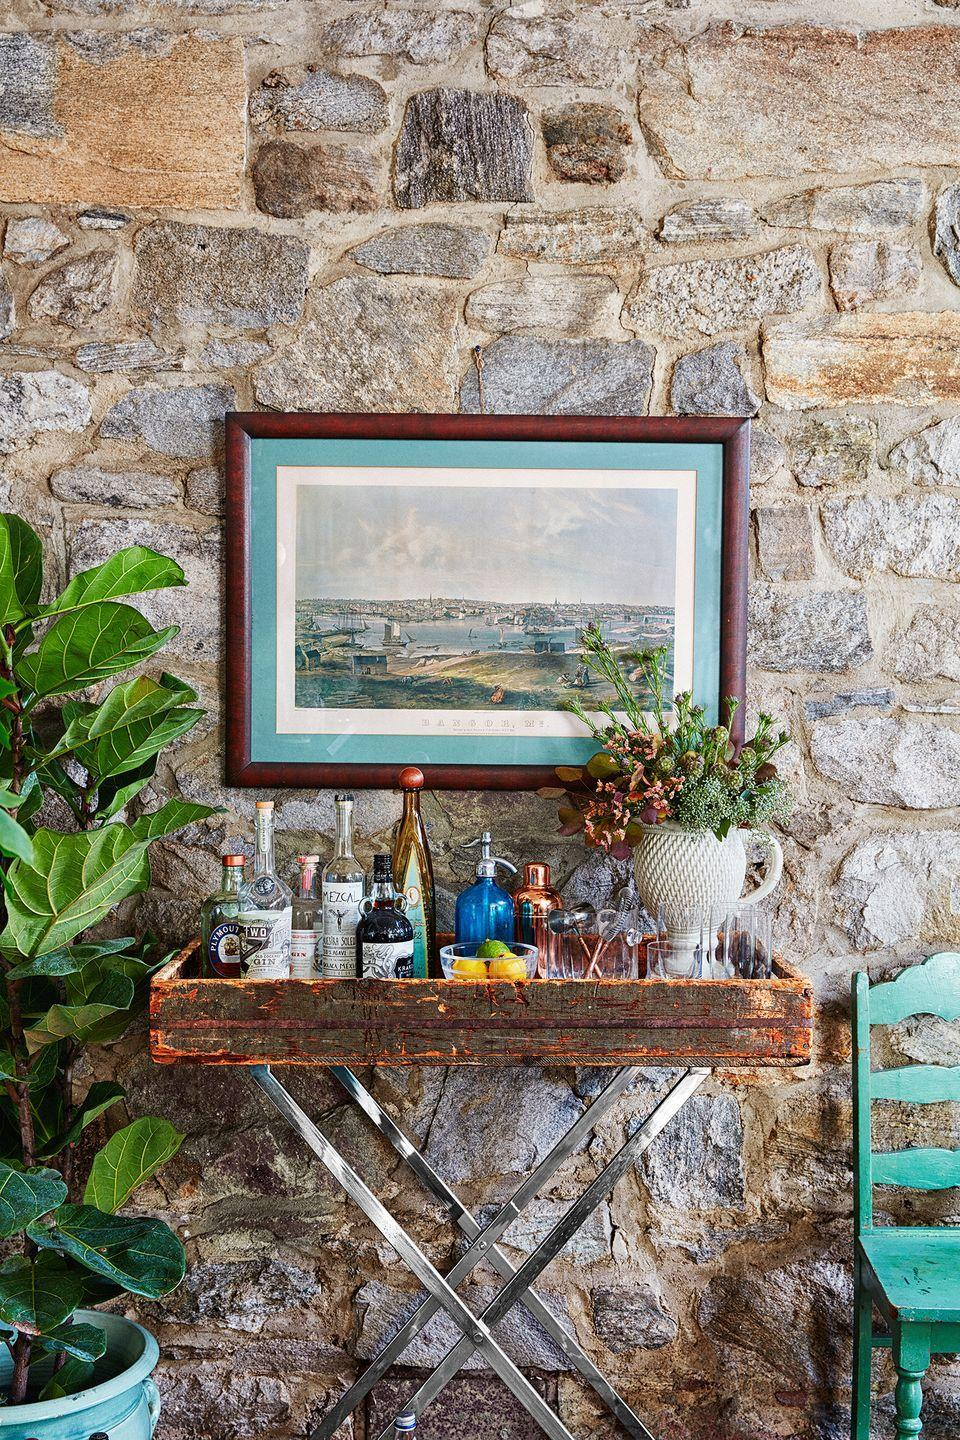 <p>If you're partial to a rustic aesthetic, turn a weathered wood tray into a bar cart for your go-to bottles and barware.</p>